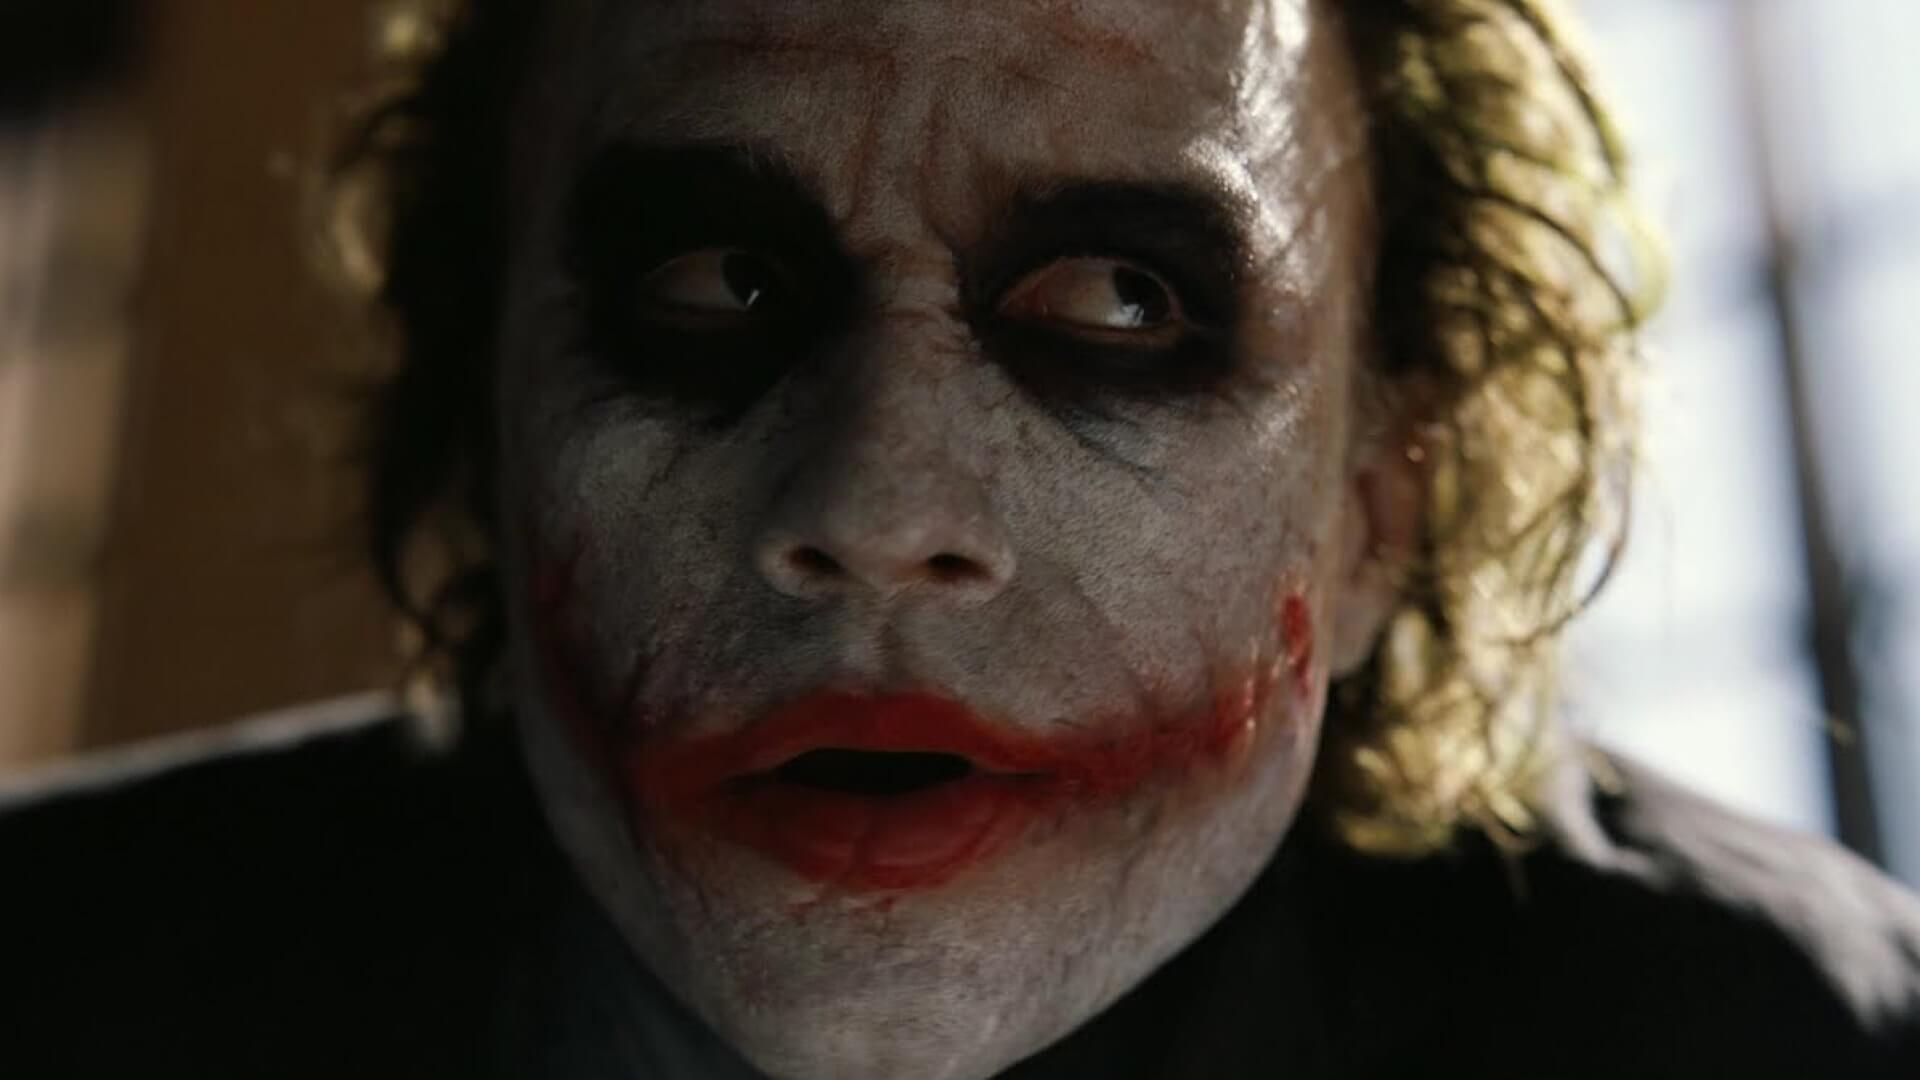 How to Design Shot Lists Like Christopher Nolan - Closeup Joker Dark Knight - StudioBinder